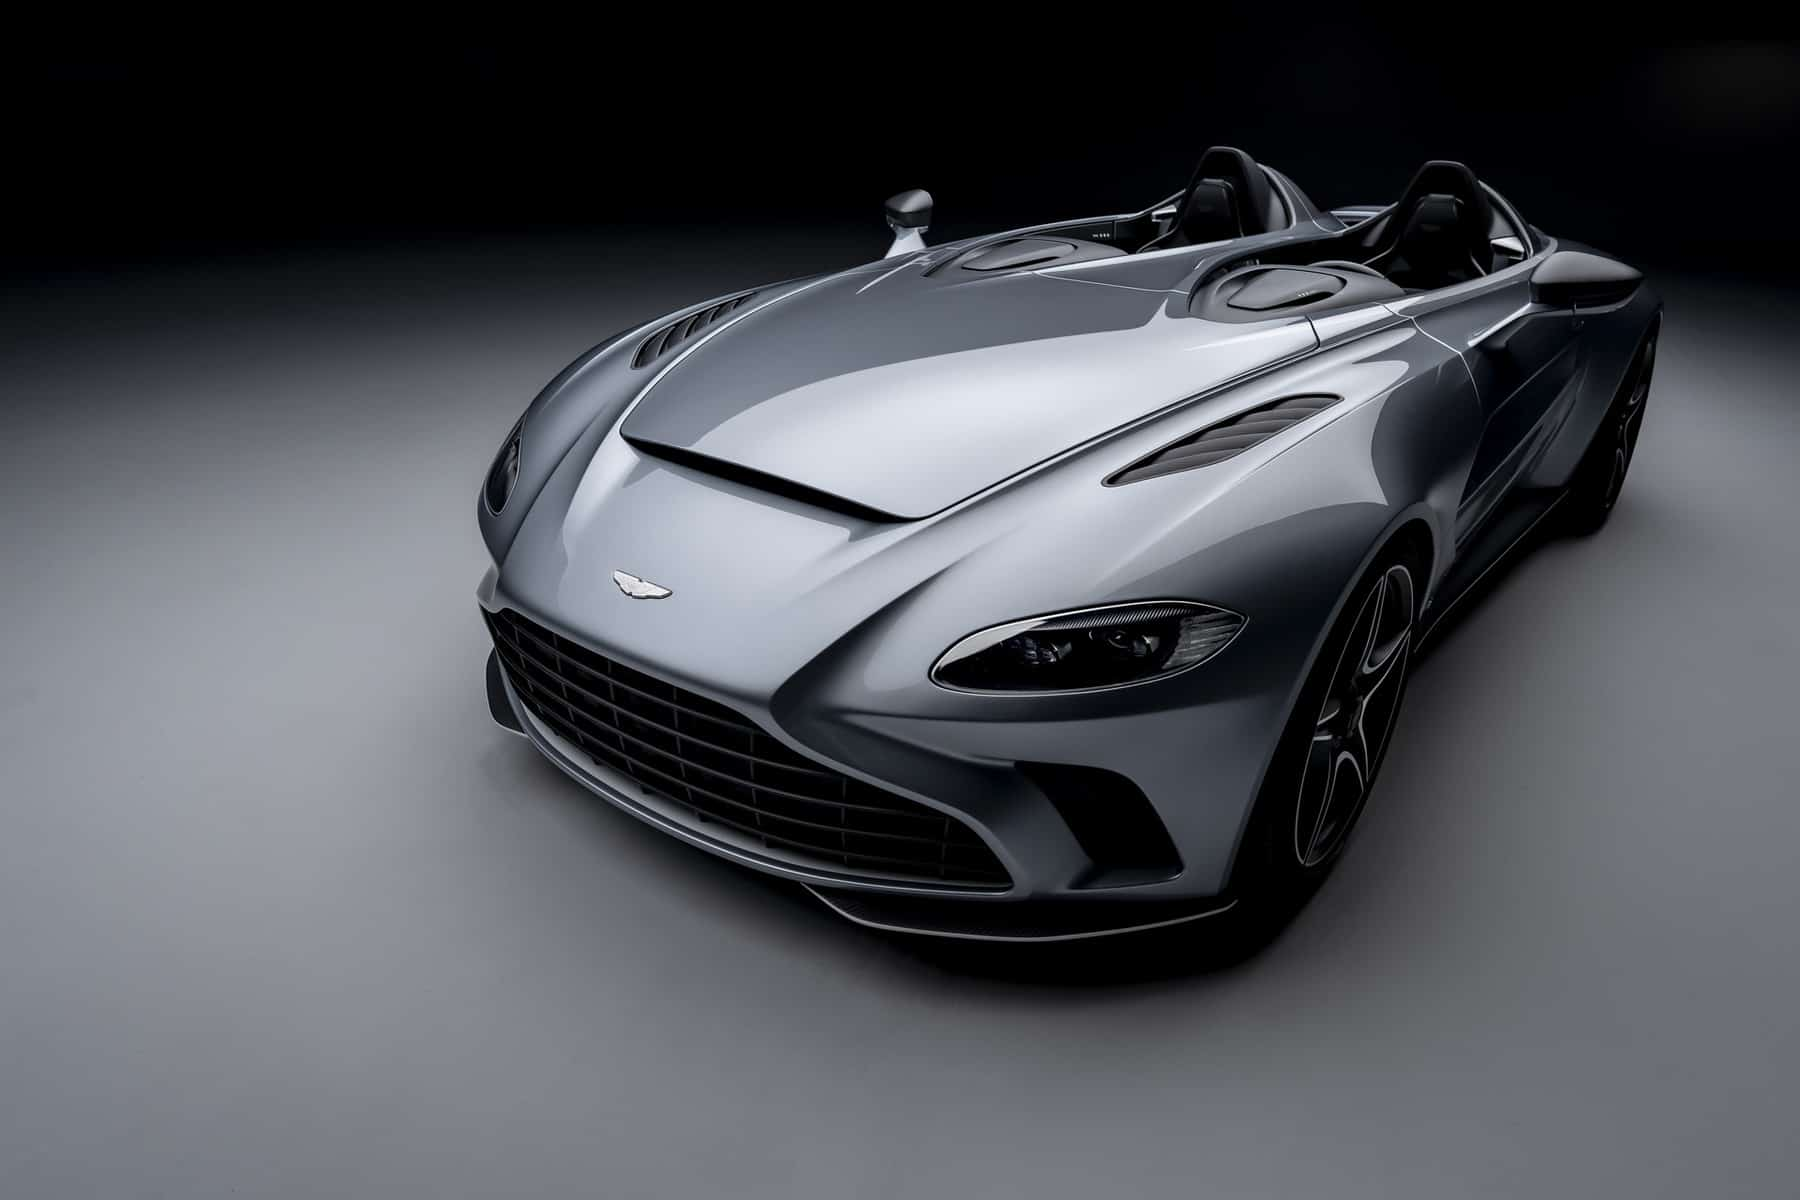 Aston Martin's Breathtaking V12 Speedster Will Blow Your Mind With Its 690 HP